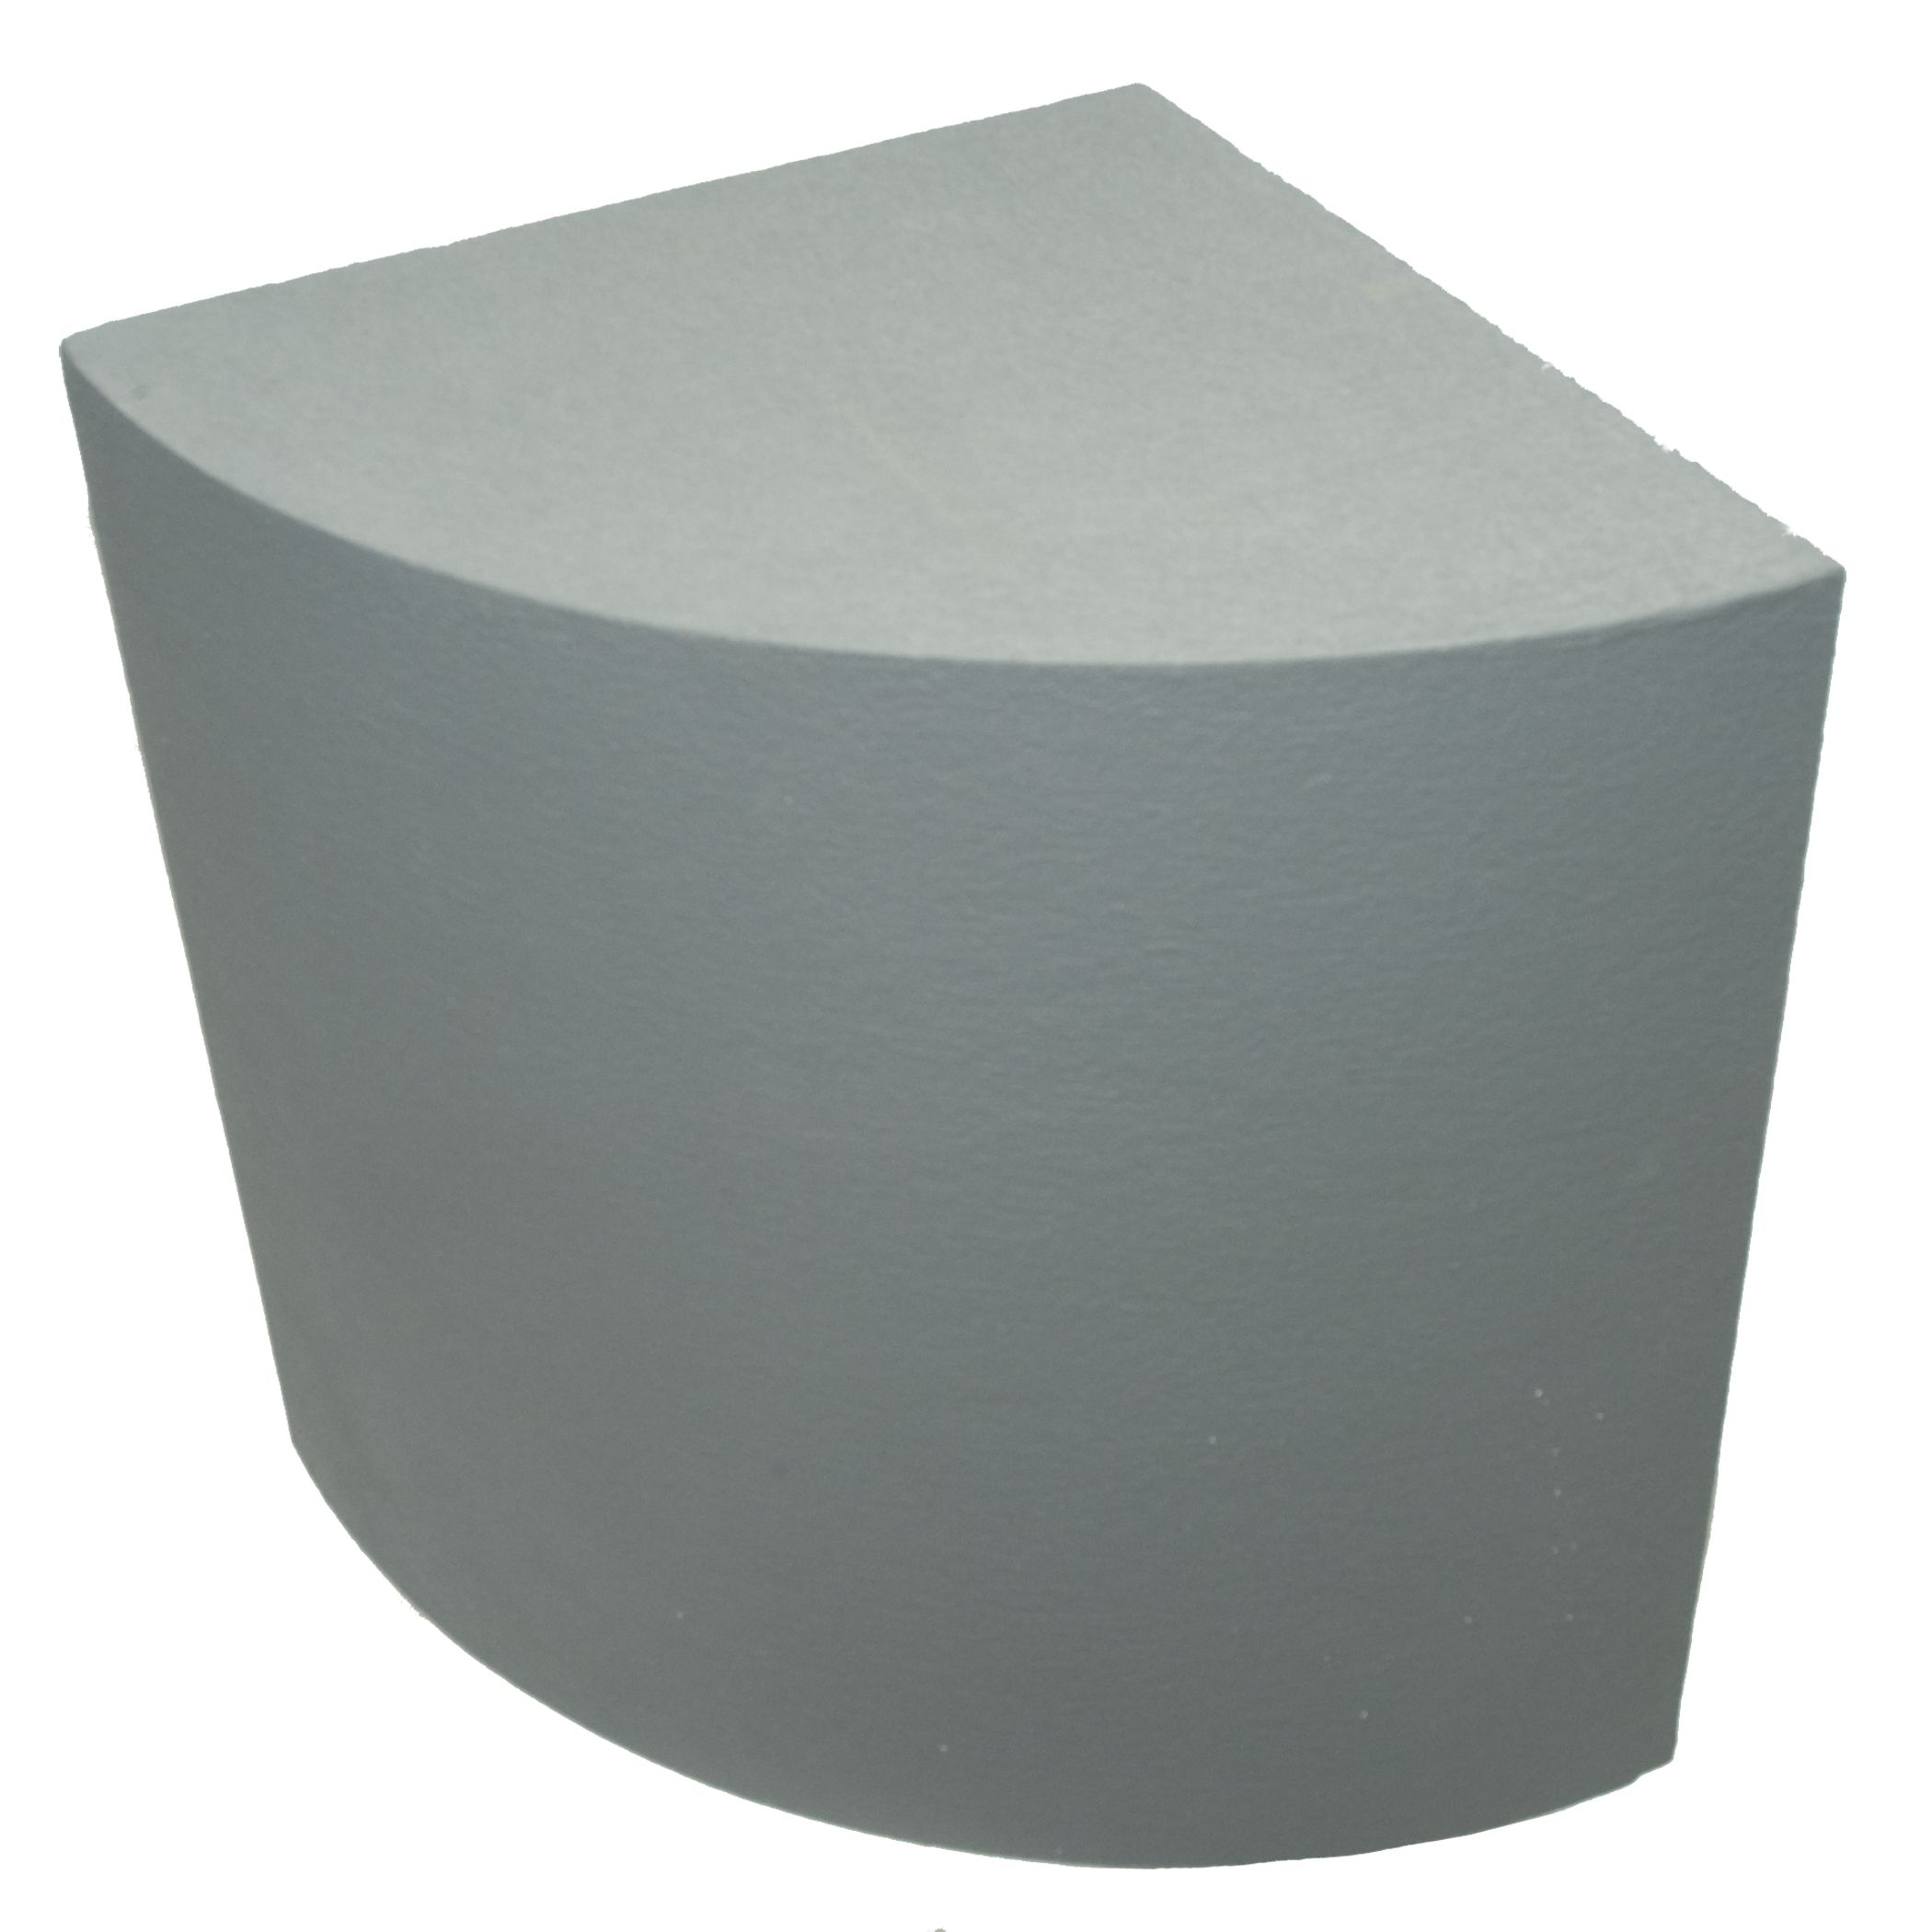 Preformed Triangle Convex Shower Seat Seat Available Shower